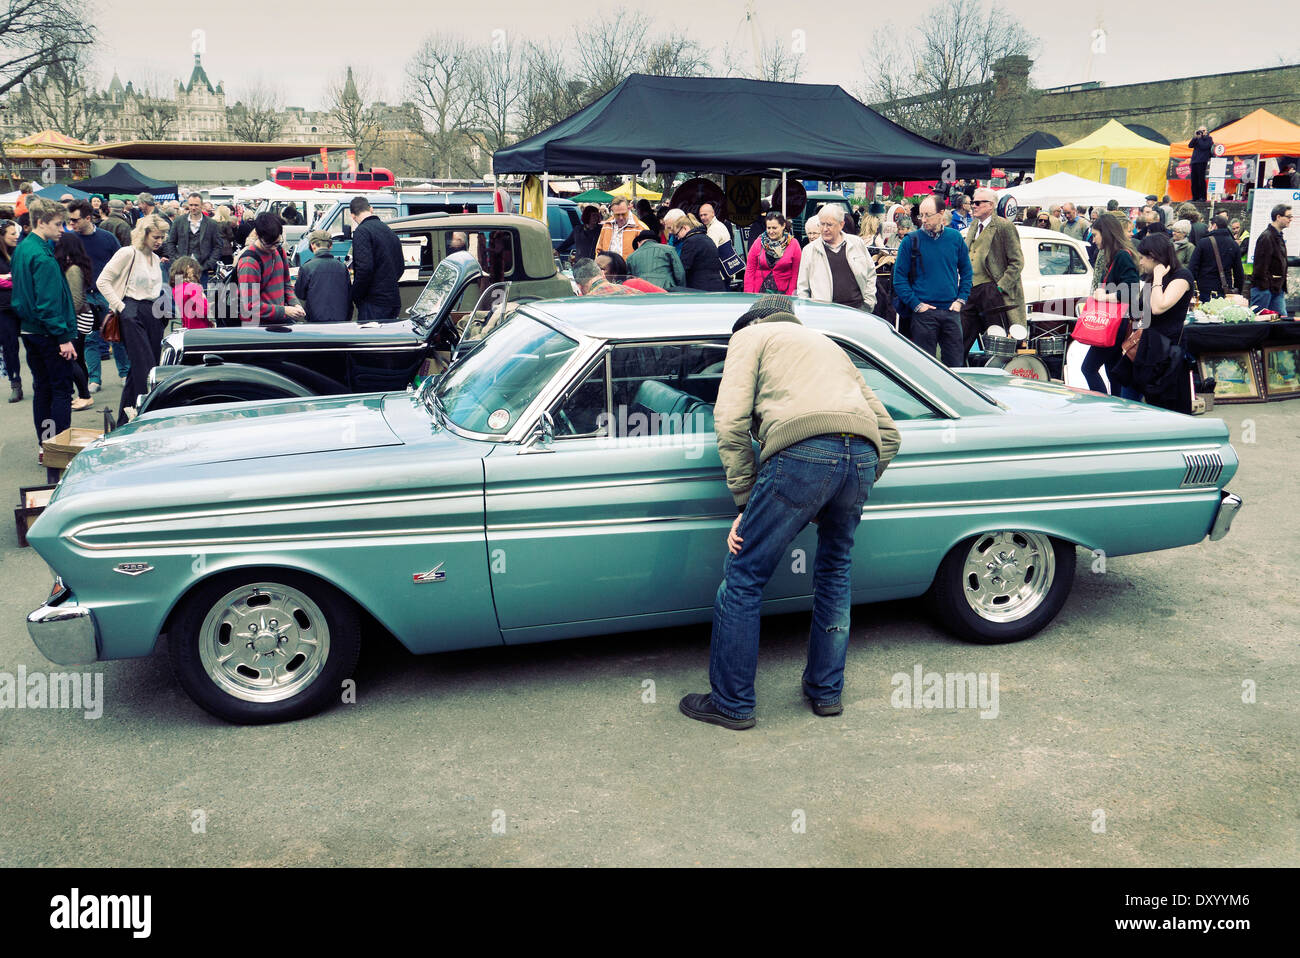 Ford Falcon at the Classic car boot sale London south Bank london UK ...